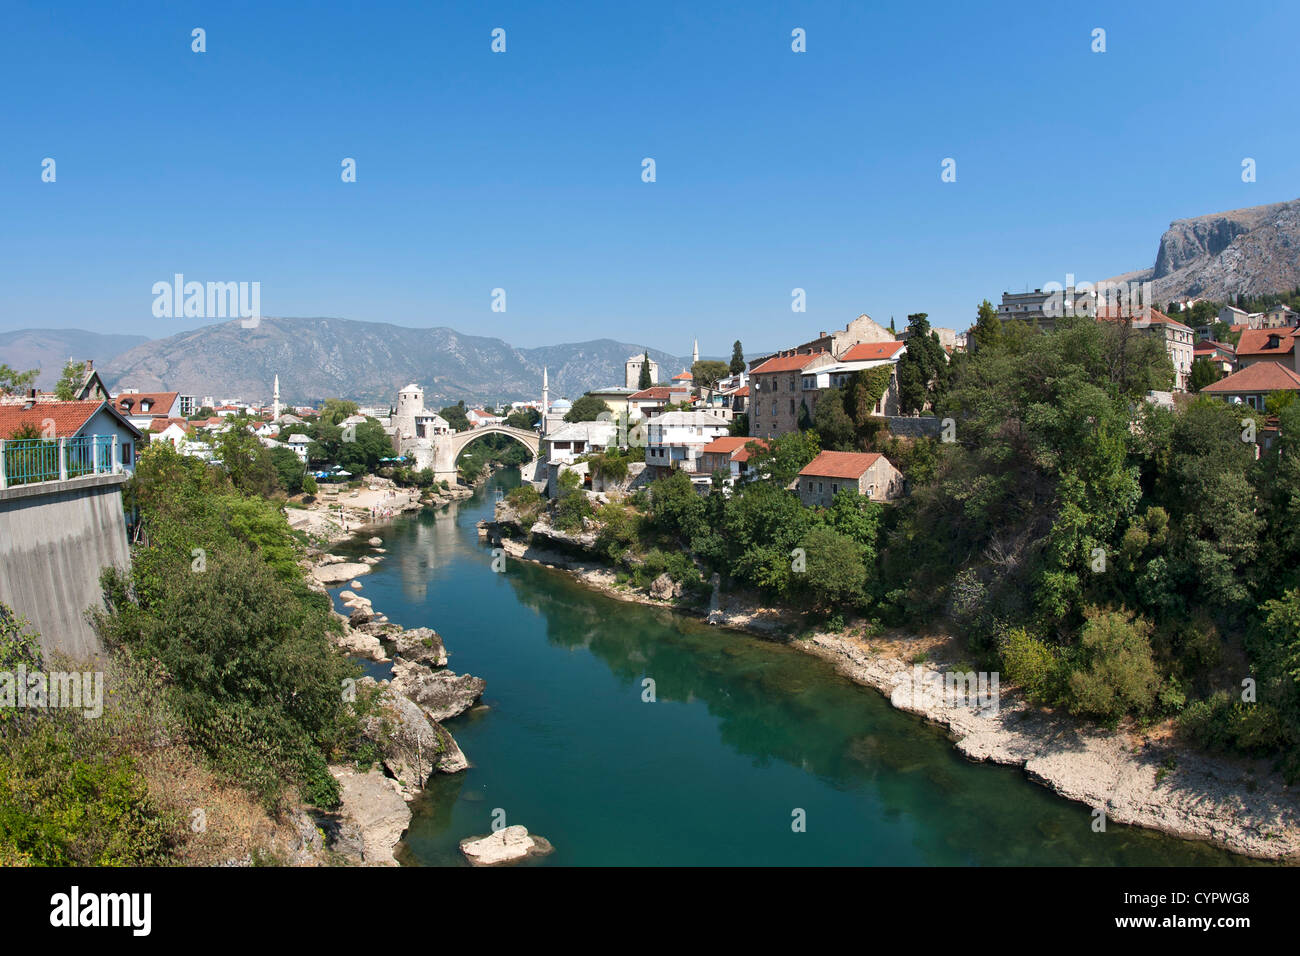 The village of Mostar and its famous Stari Most 'Old Bridge' over the Neretva River in Bosnia-Herzegovina. - Stock Image